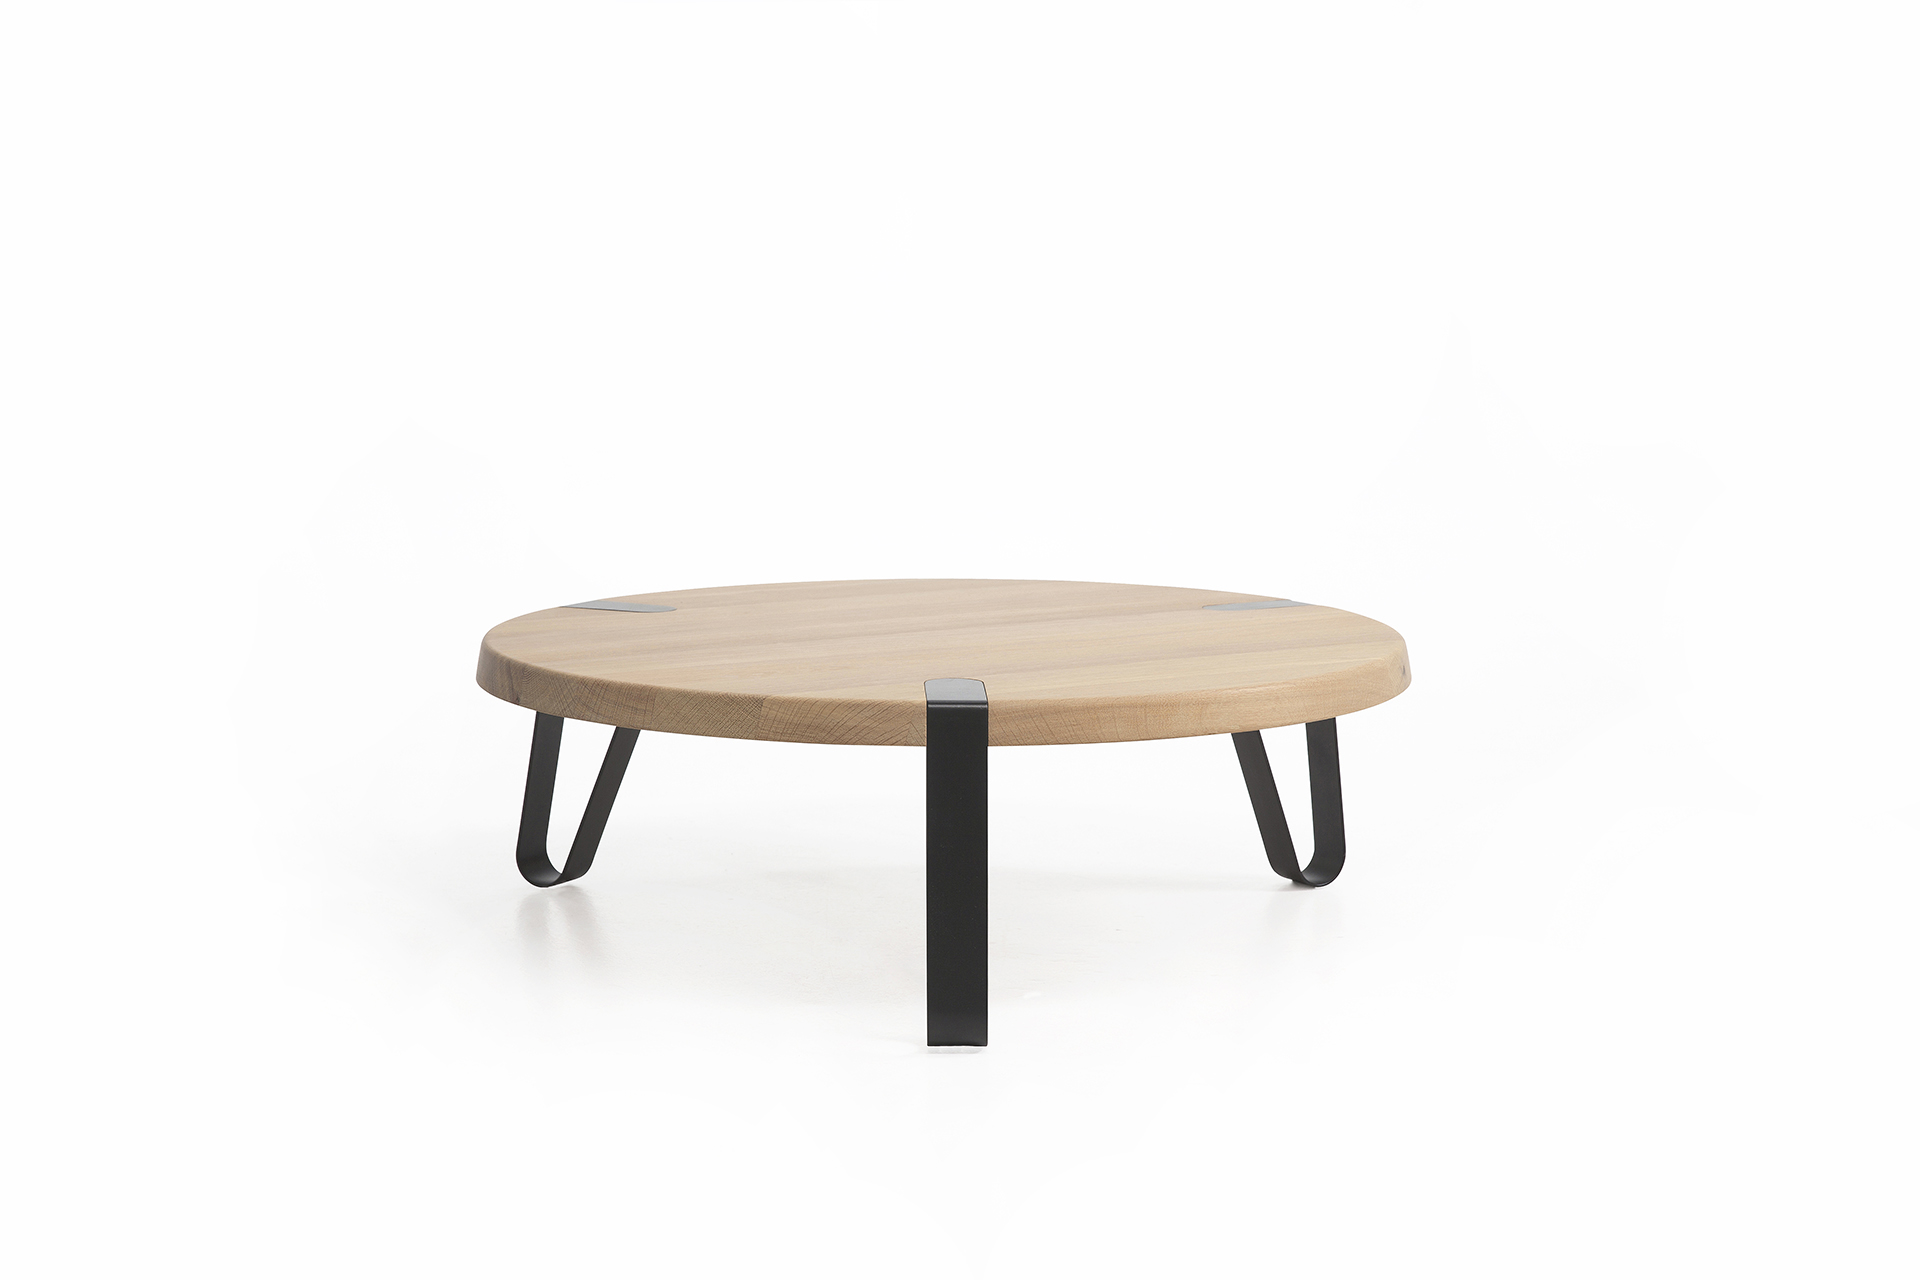 Ronde Salontafel Design.Level Rond Design Salontafel L Erik Remmers L Odesi Your Dutch Design